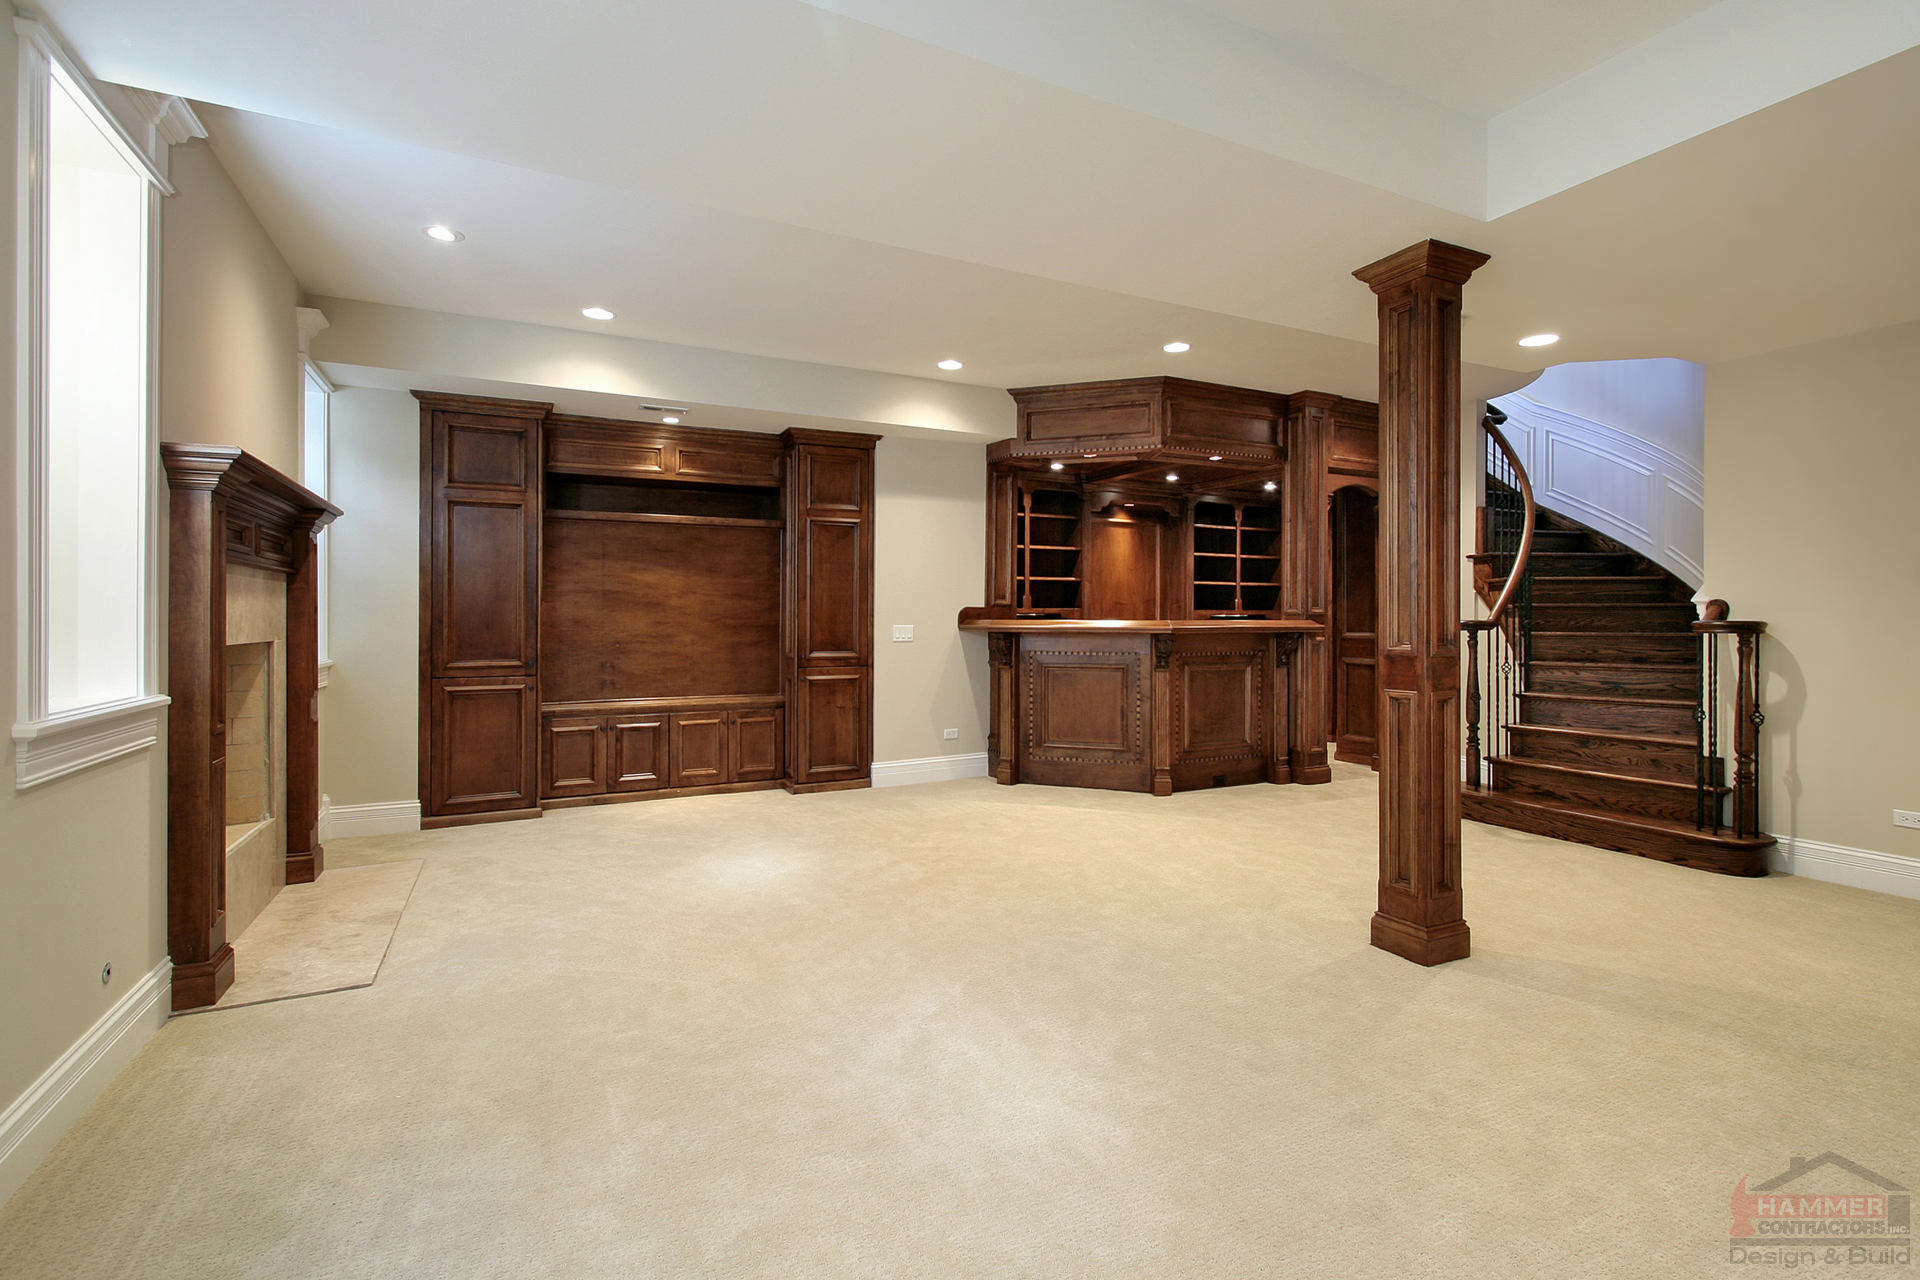 Room design ideas for your basement finishing project basement systems - Finish basement design ...